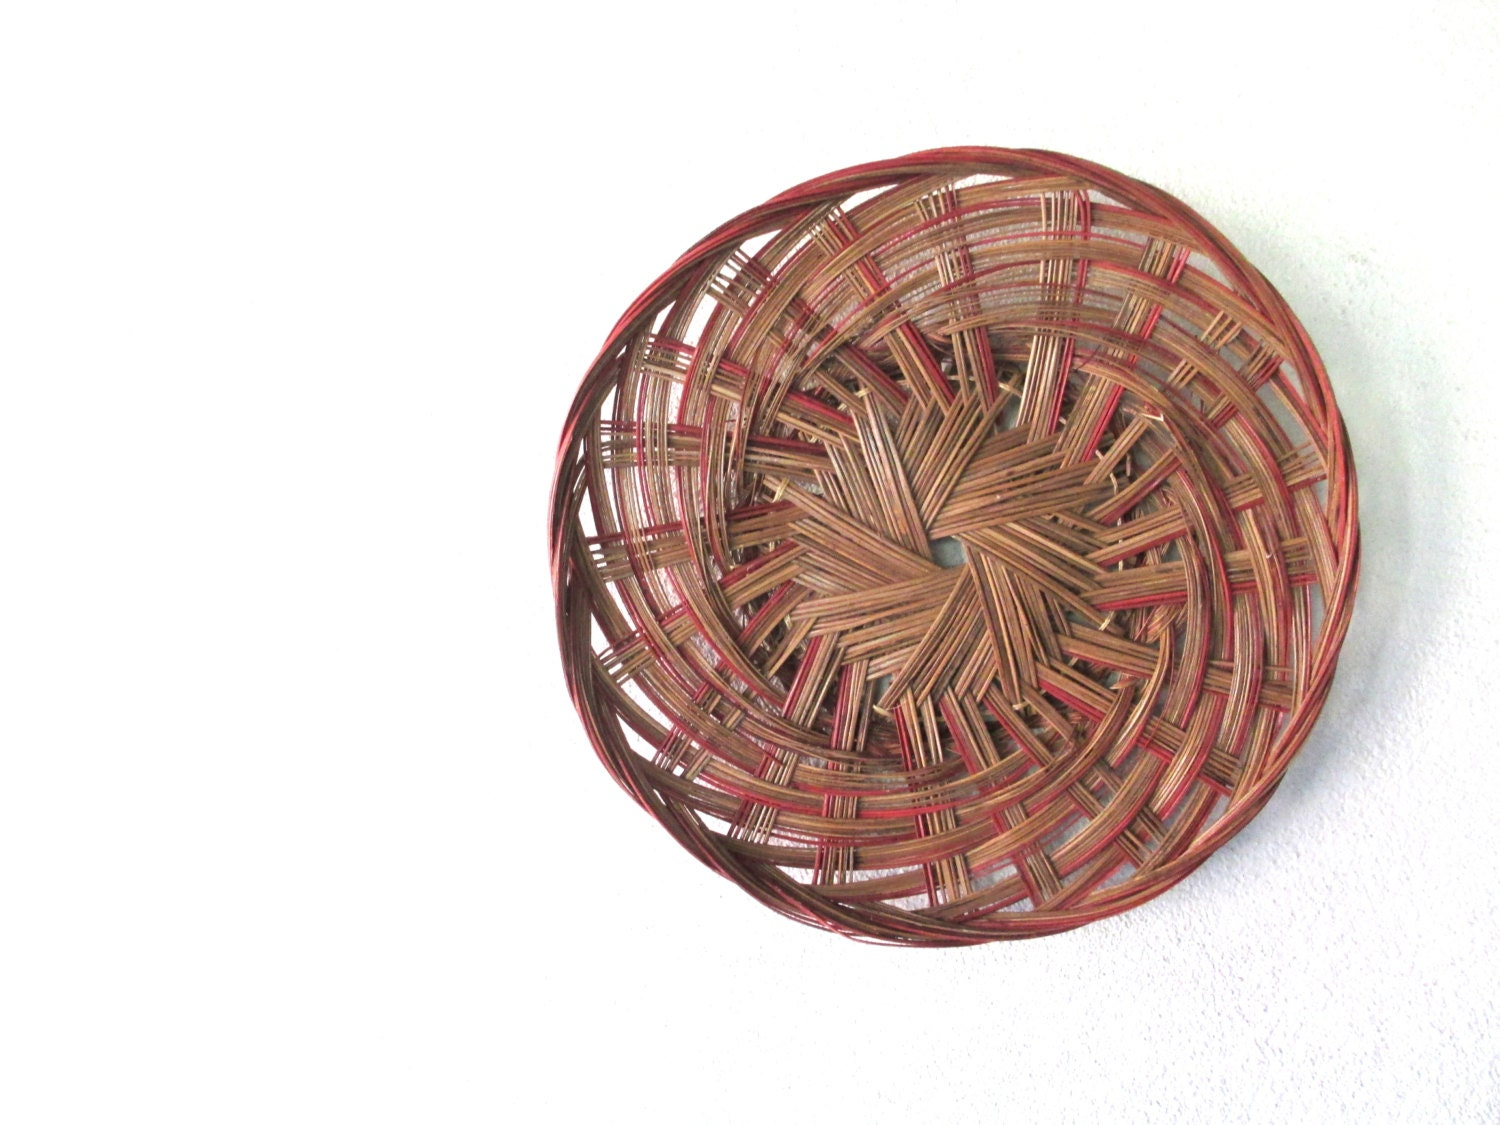 Vintage woven basket wall hanging decor warm by - Decorative basket wall art ...